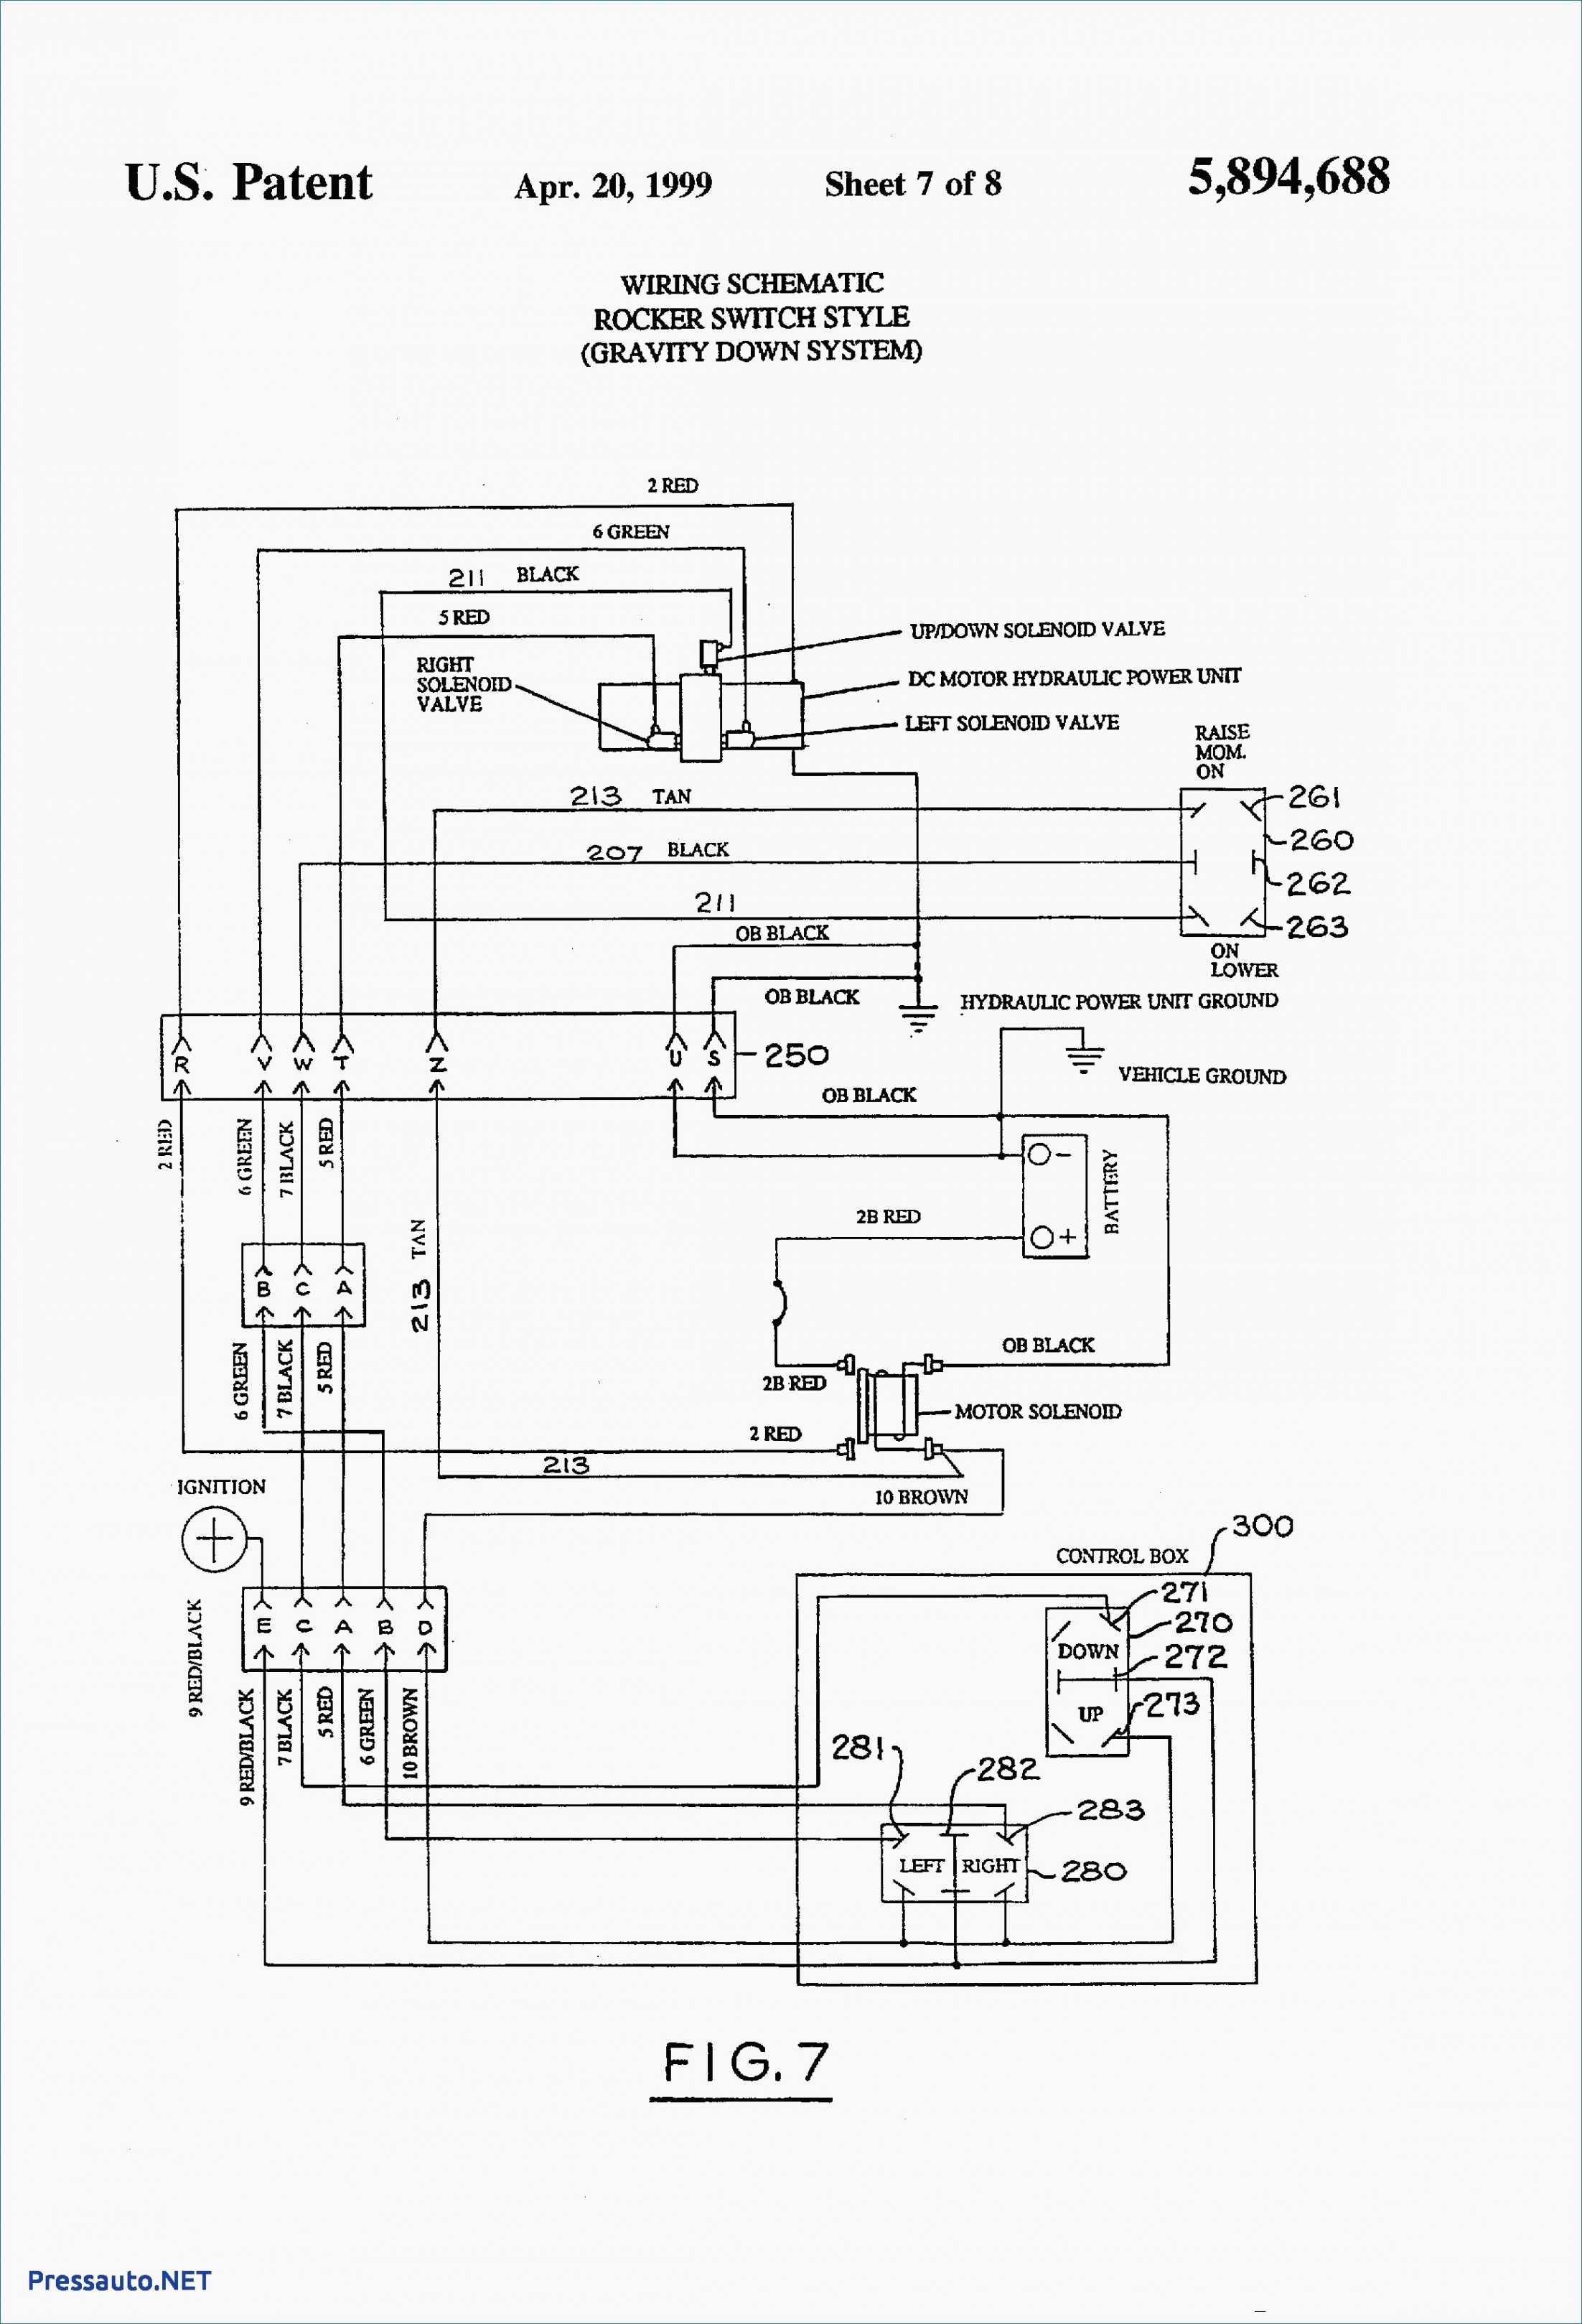 DIAGRAM] Sam Snow Plow Wiring Diagram Remote FULL Version HD Quality Diagram  Remote - DIAGRAMPC.COIFFURE-A-DOMICILE-67.FRdiagrampc.coiffure-a-domicile-67.fr